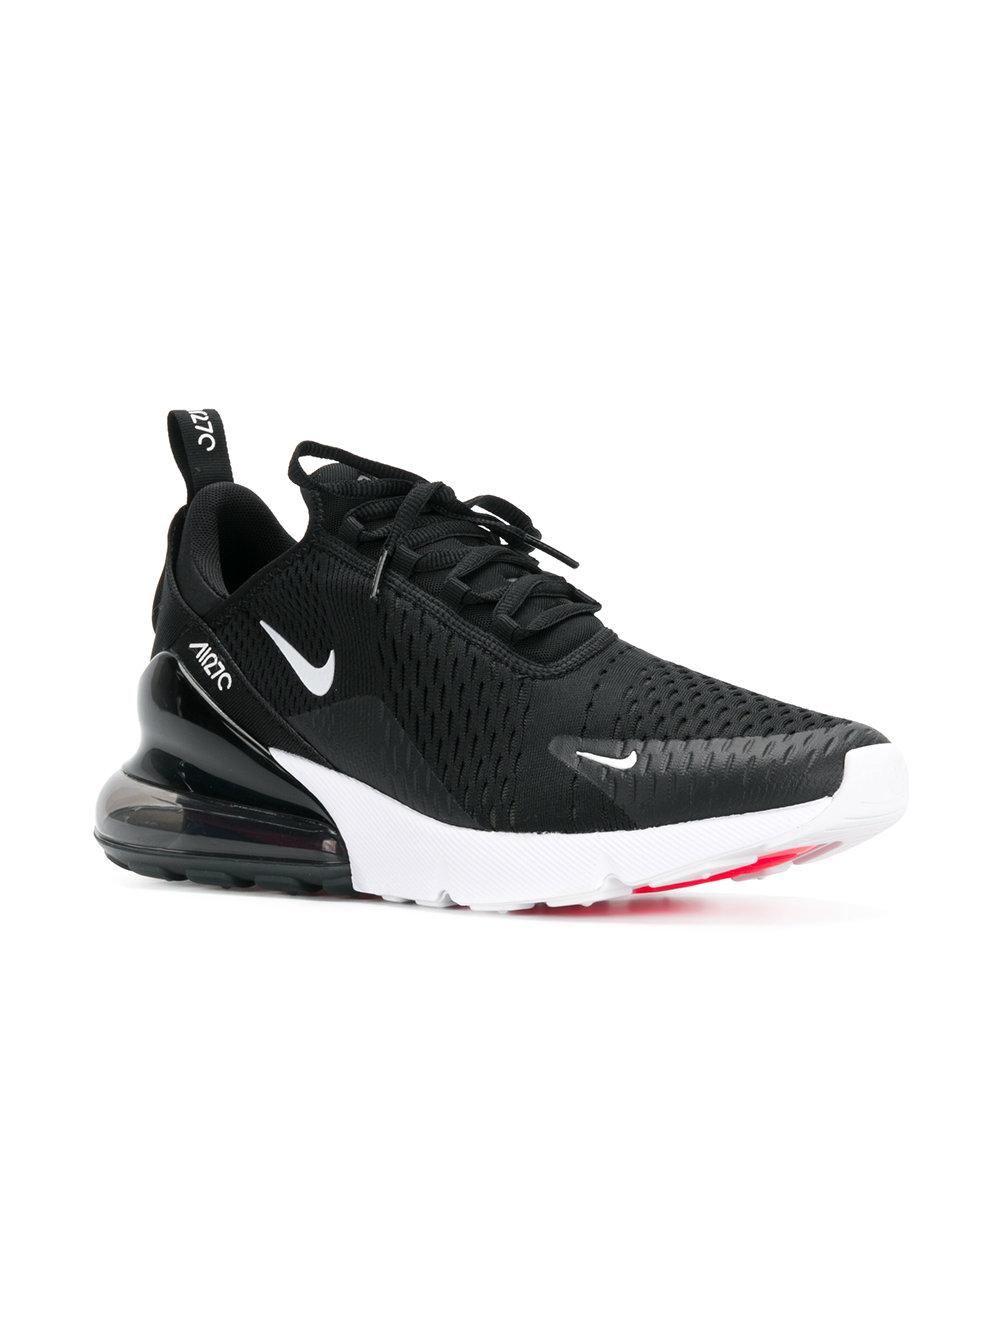 new product 397a6 49da2 Nike - Black Air Max 270 Sneakers for Men - Lyst. View fullscreen